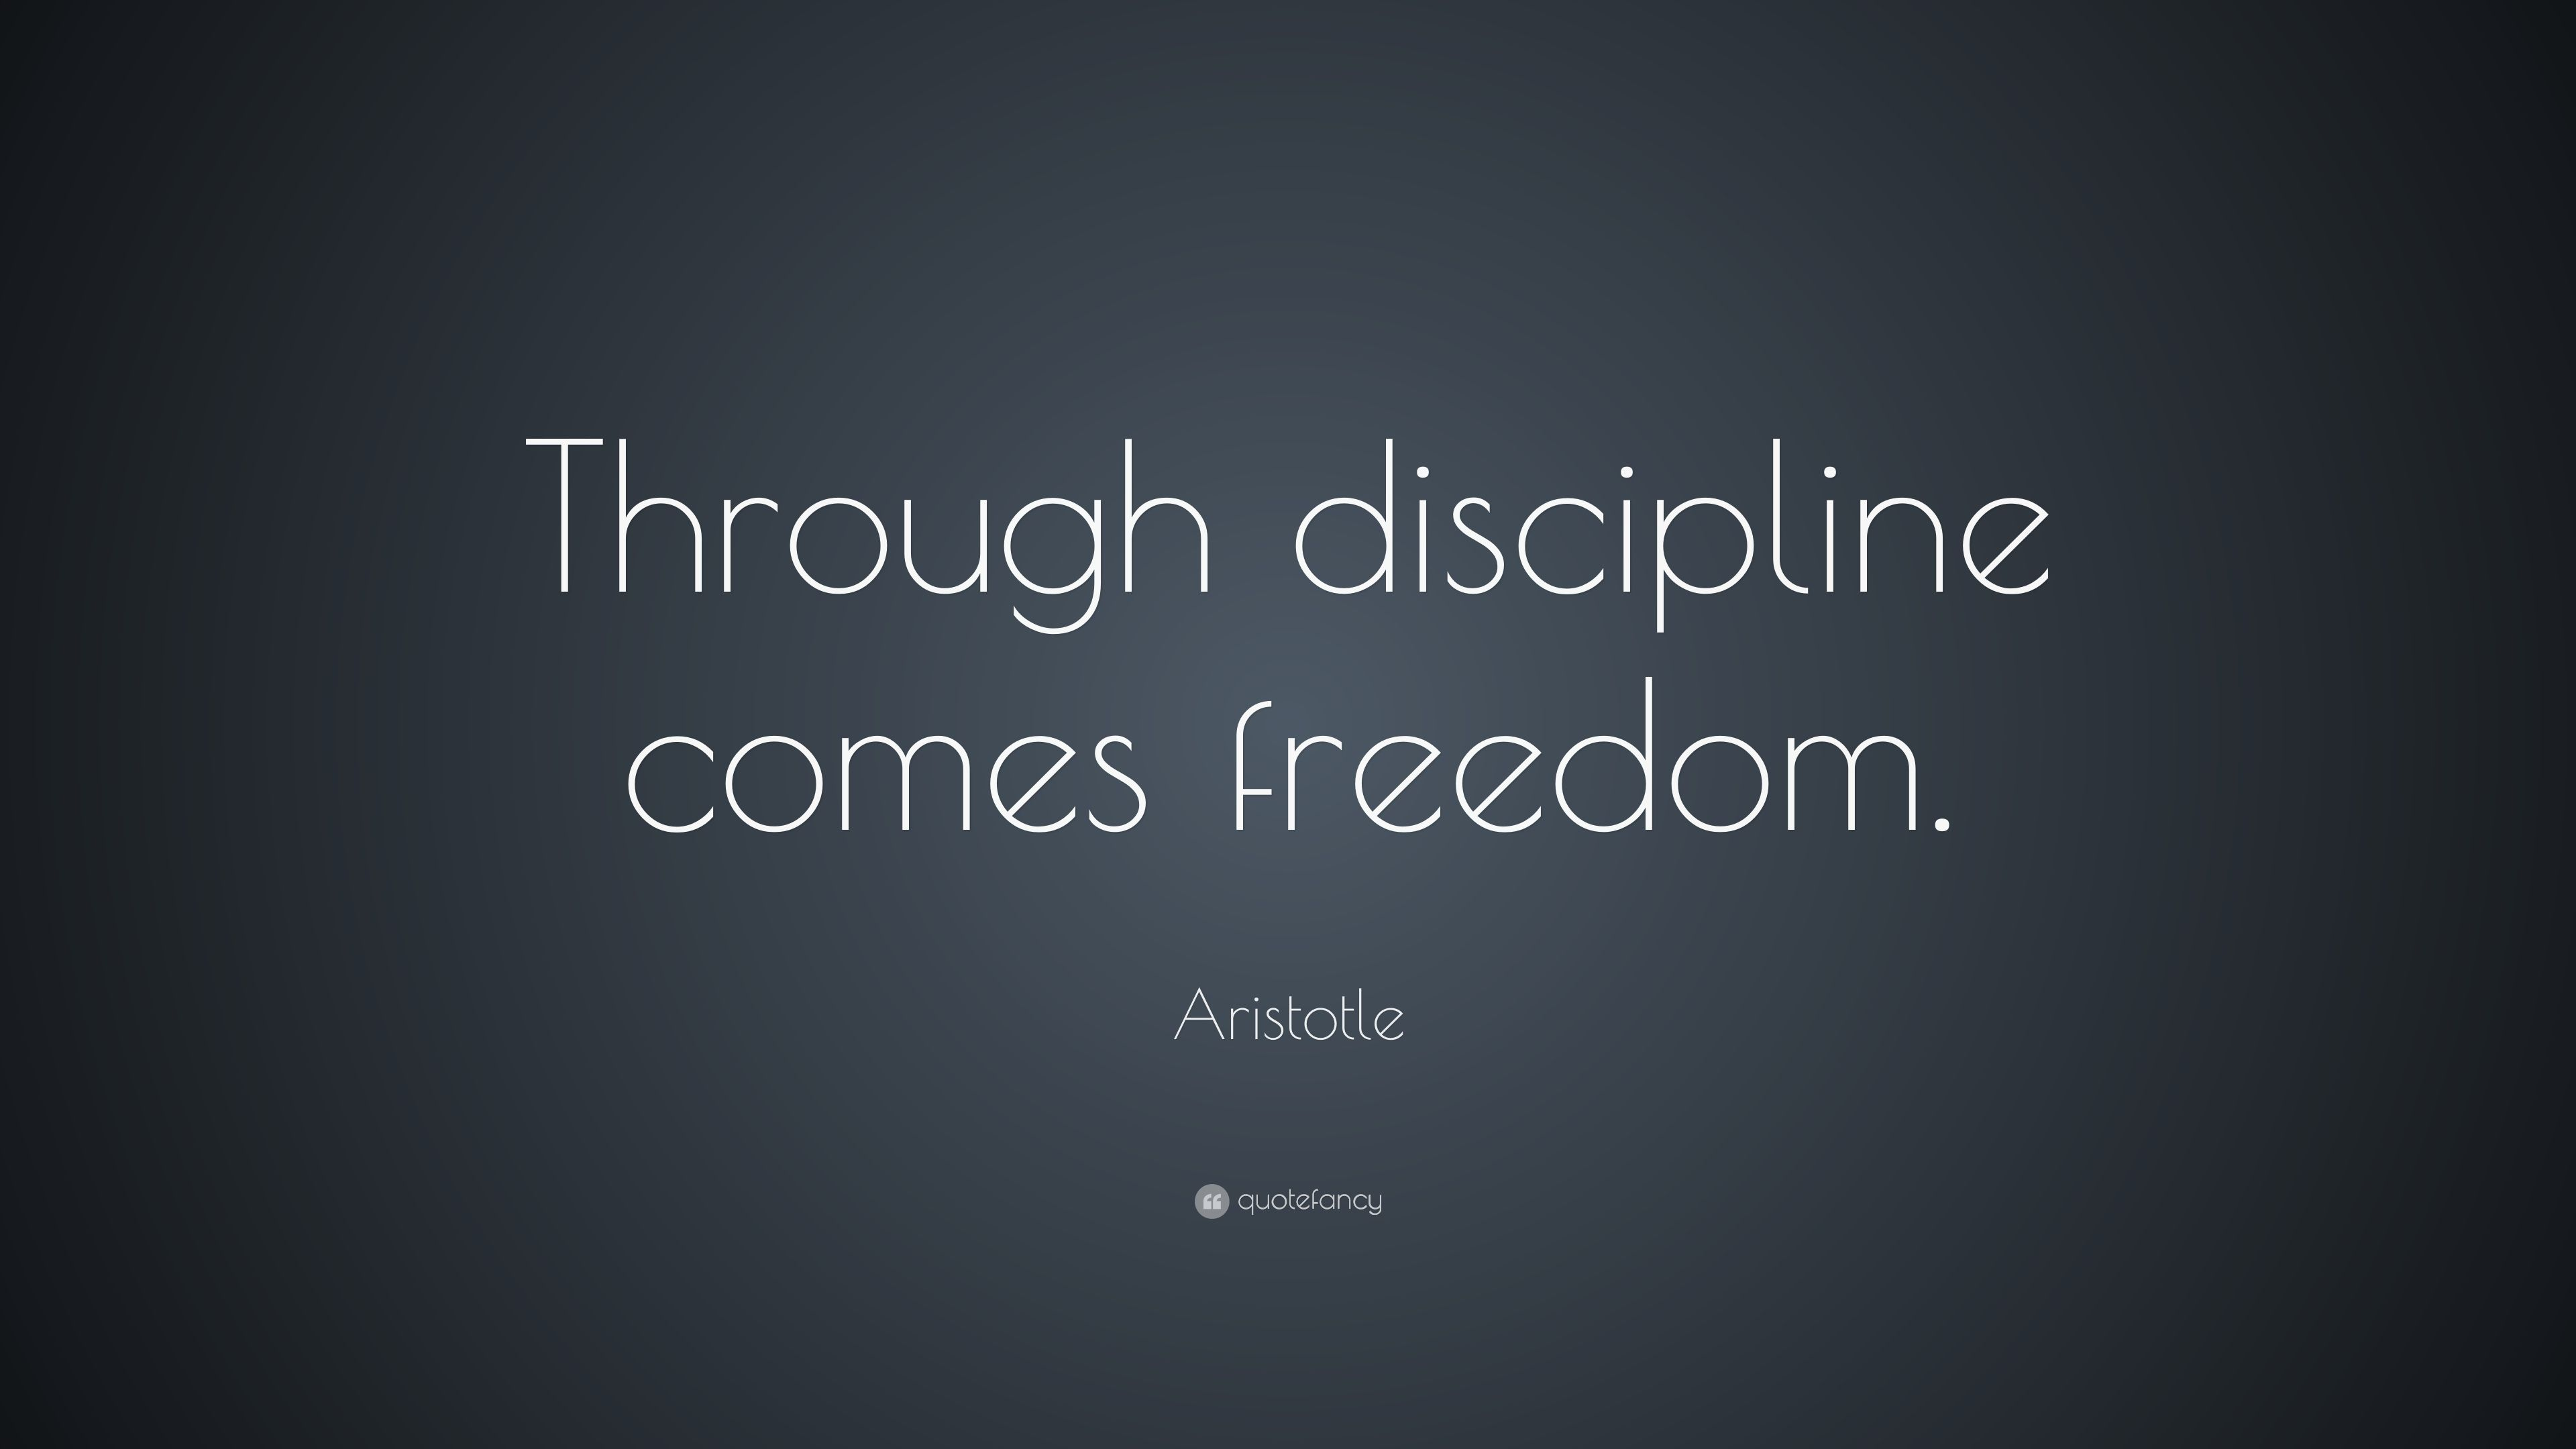 25 Best Aristotle Quotes On Pinterest: Image Result For Discipline Equals Freedom